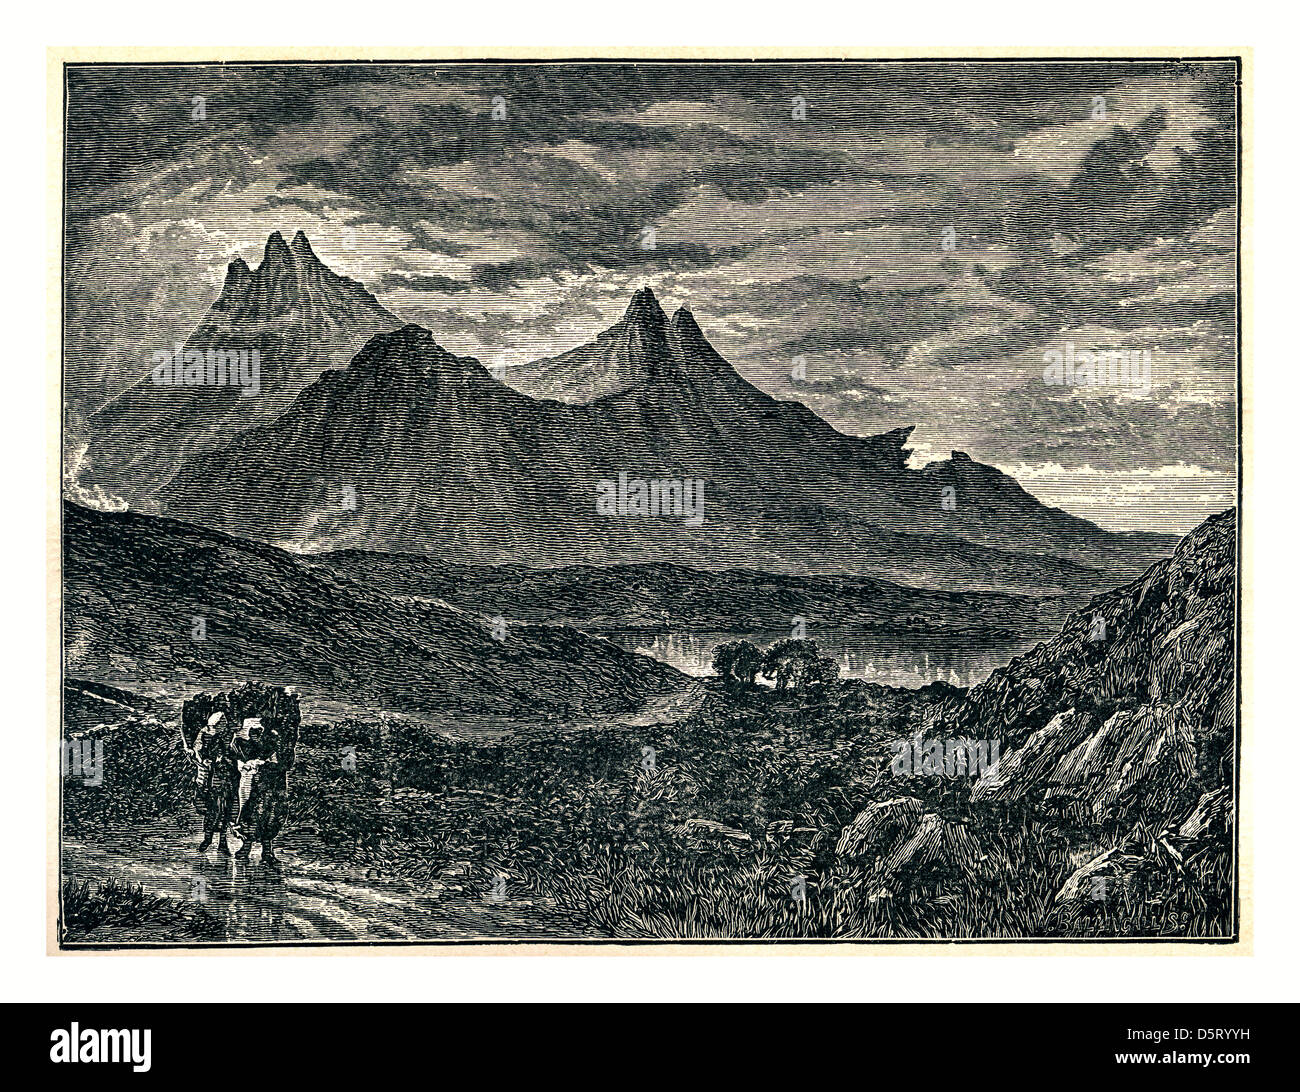 Historic illustration 1700's of The Pinnacles, Scuir-na-Gillian, Isle of Skye - Stock Image